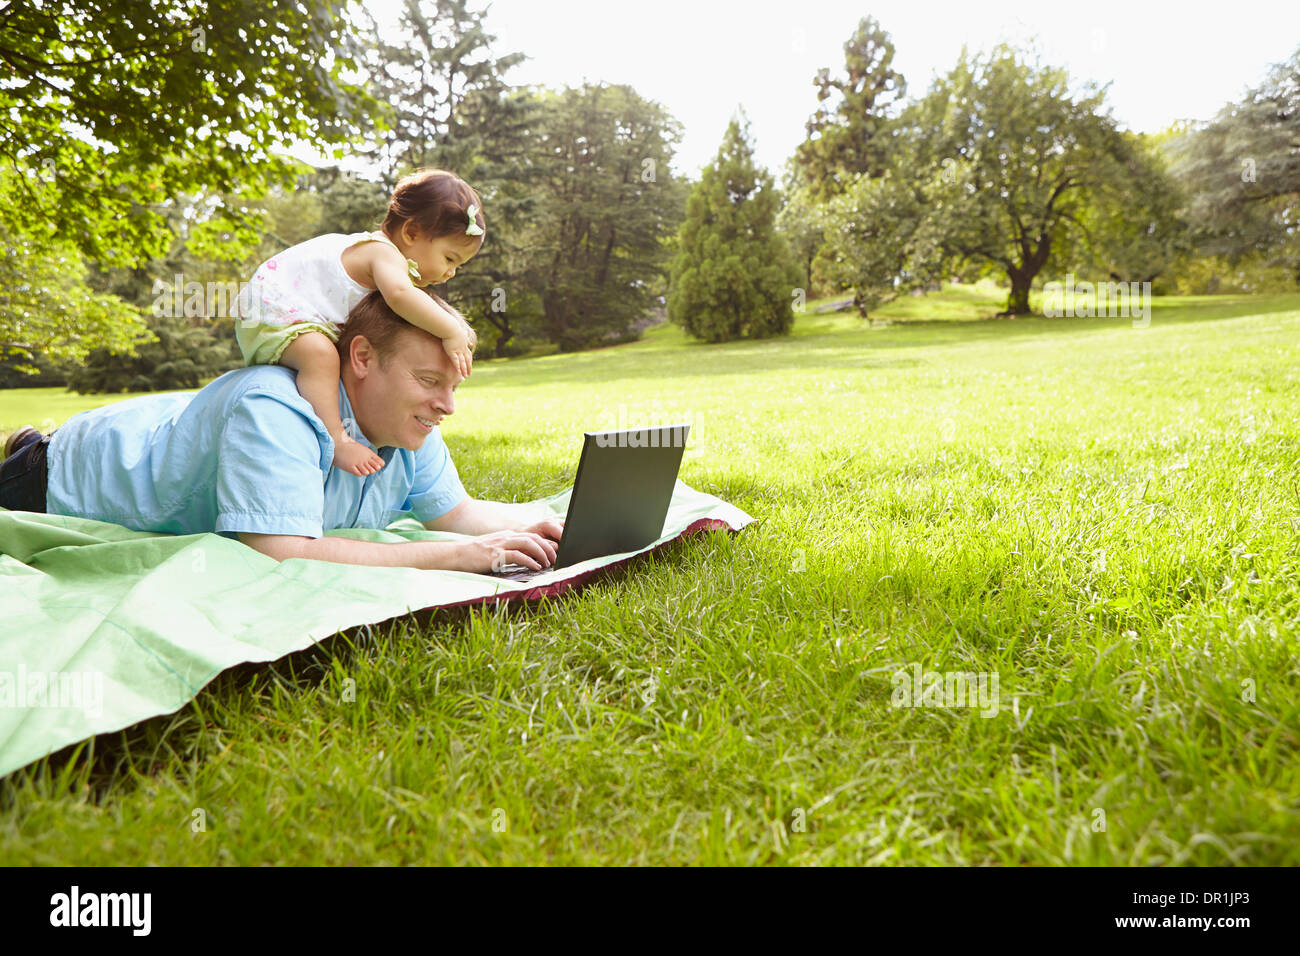 Father and baby girl using laptop in park Stock Photo